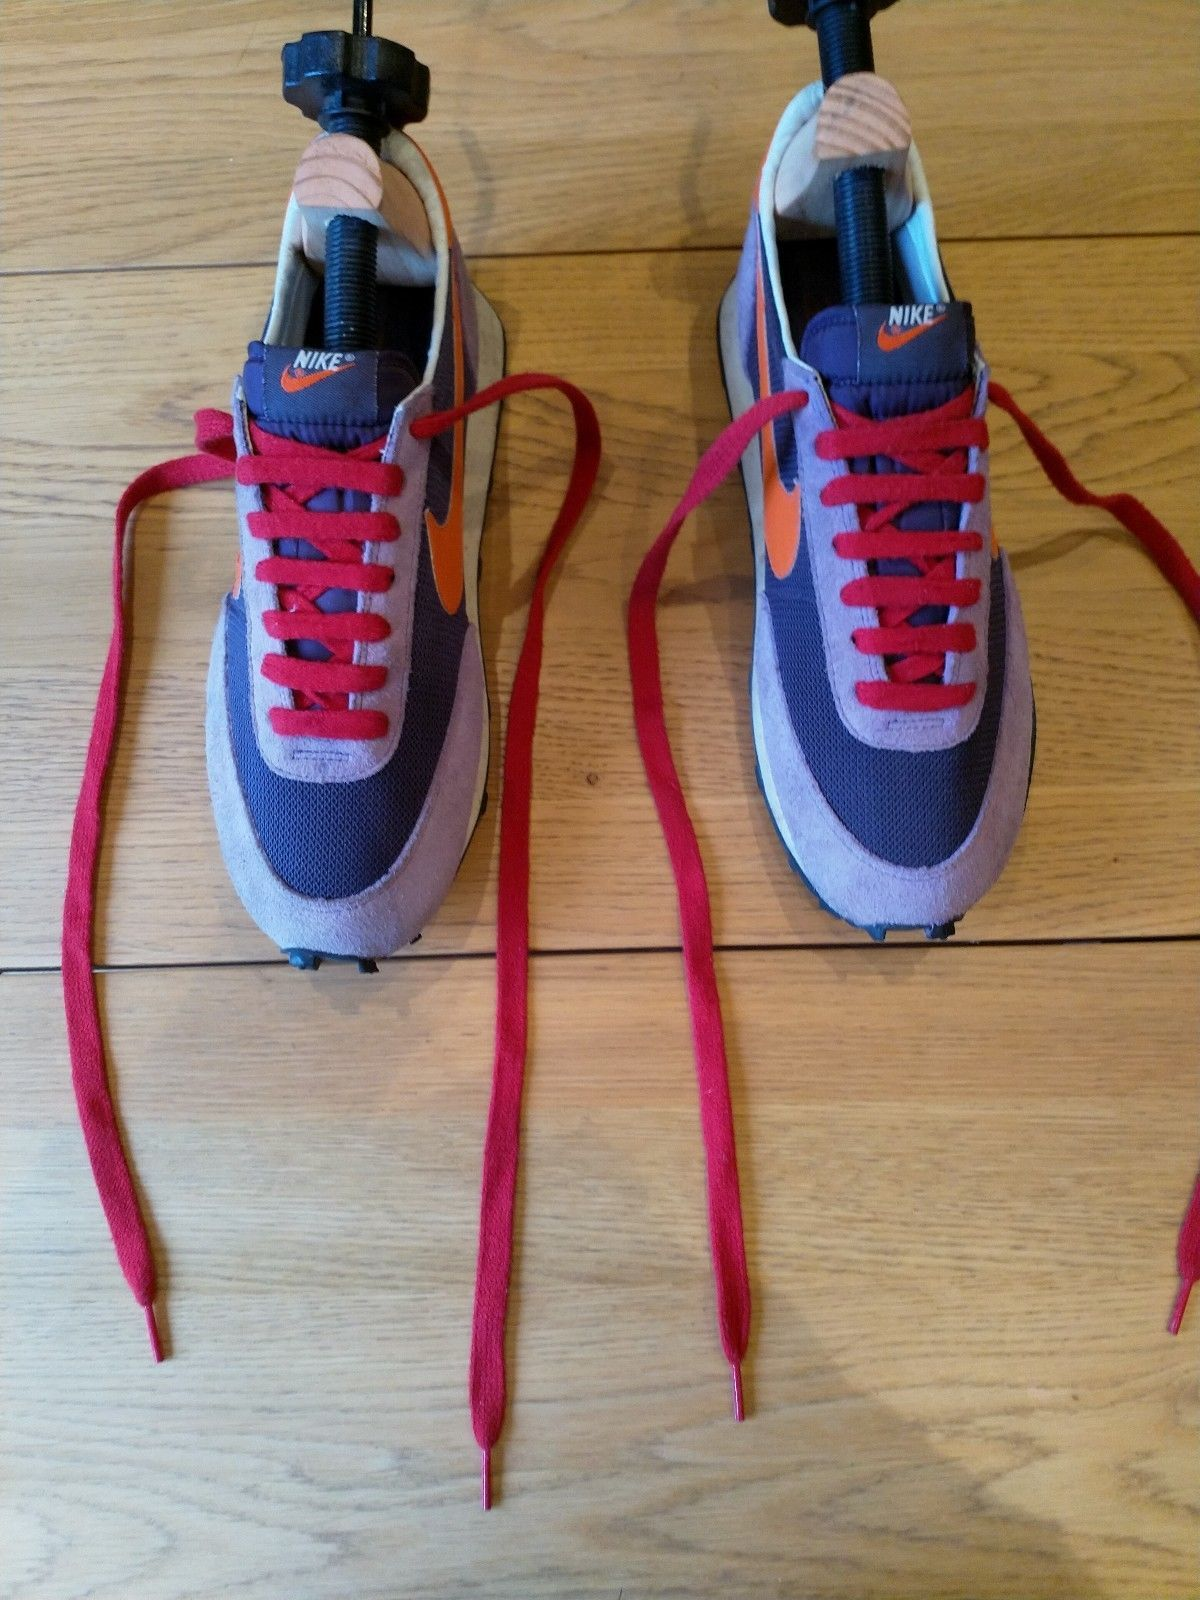 quality design 45283 2008a Nike vintage patent Waffle Racer running shoes Trainers rare uk9 LD 1000  premium   eBay